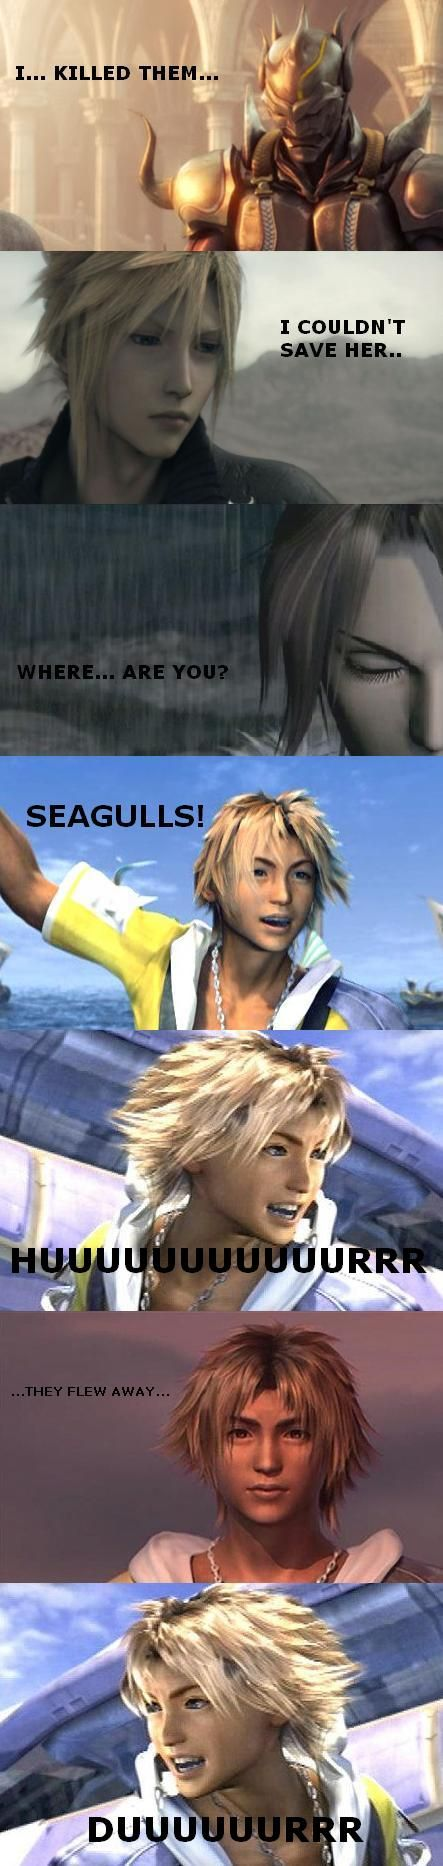 Why Tidus is the best. Cloud Strife and Squall Leonhart are such lamers for not wanting seagulls. ff7 ff8 ff10 final fantasy VII VIII and X